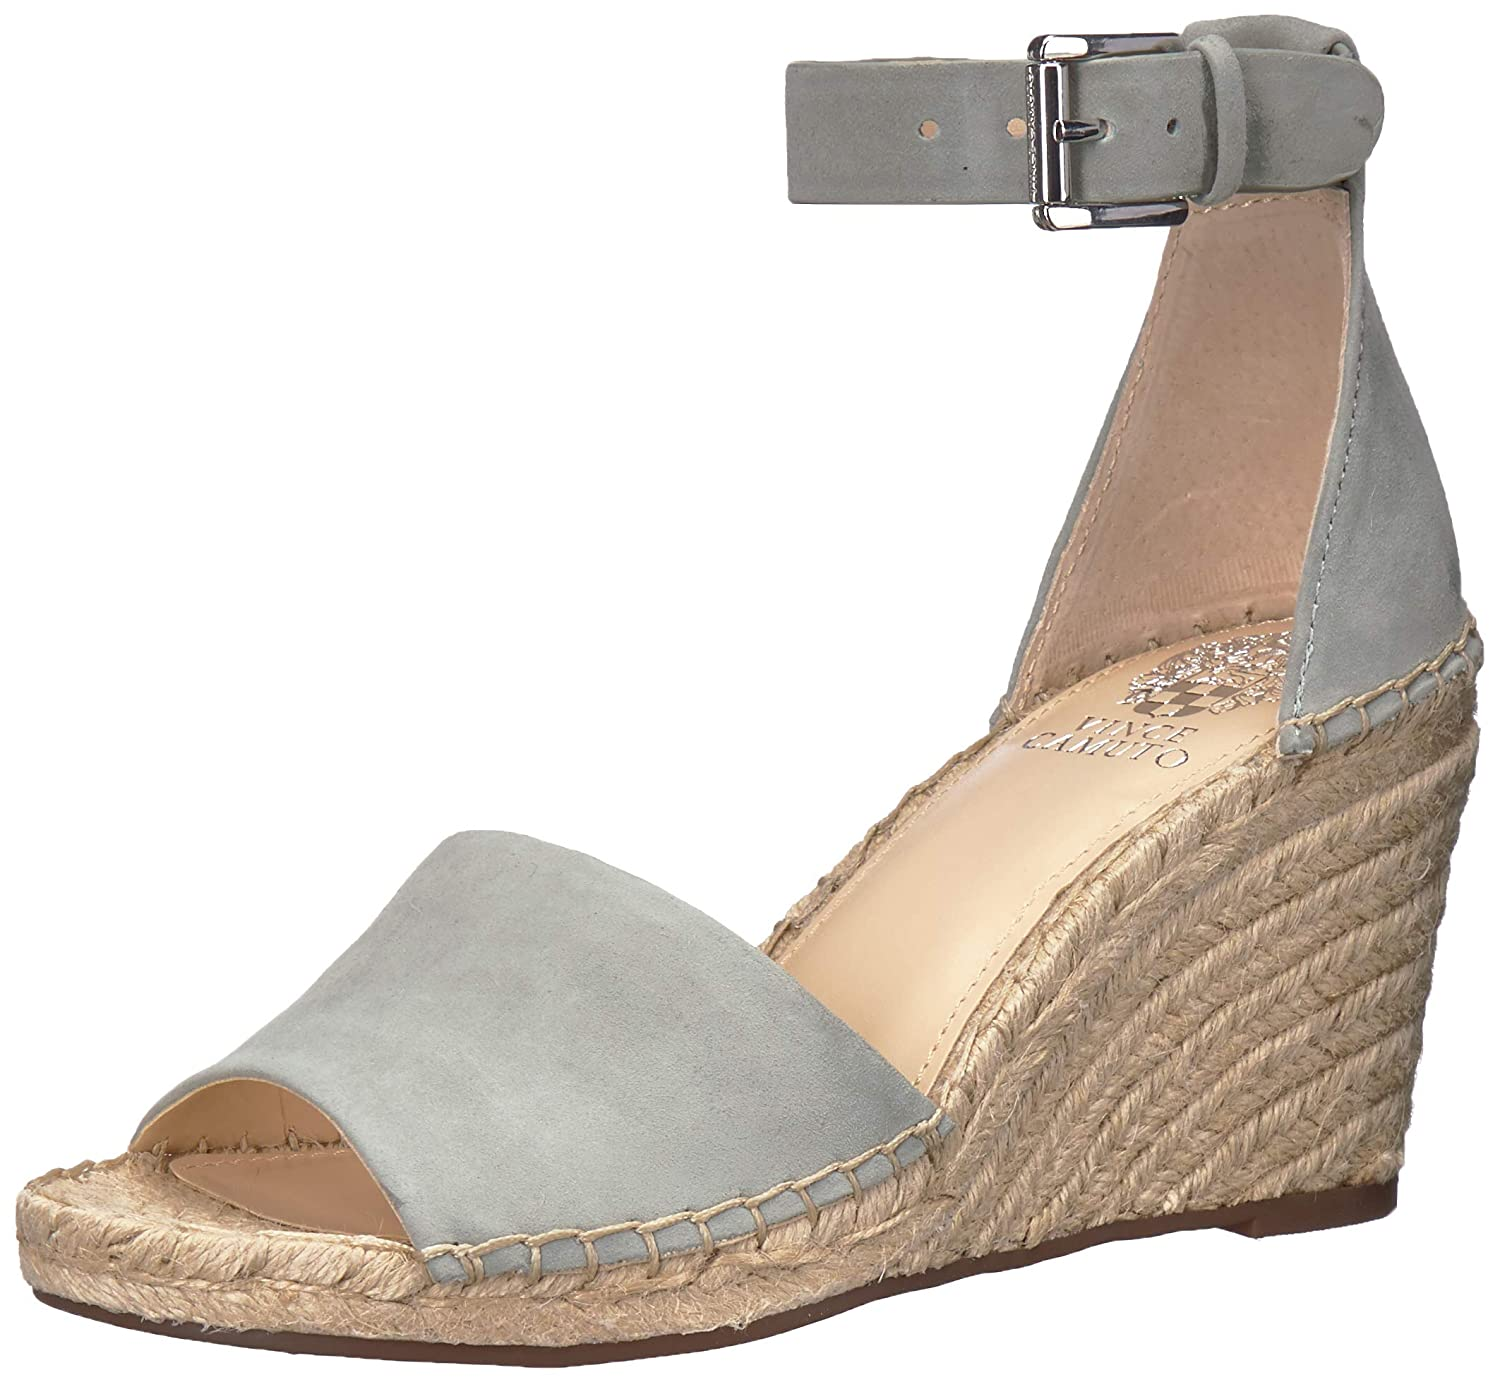 Pea Pod Vince Camuto Women's LEERA Wedges